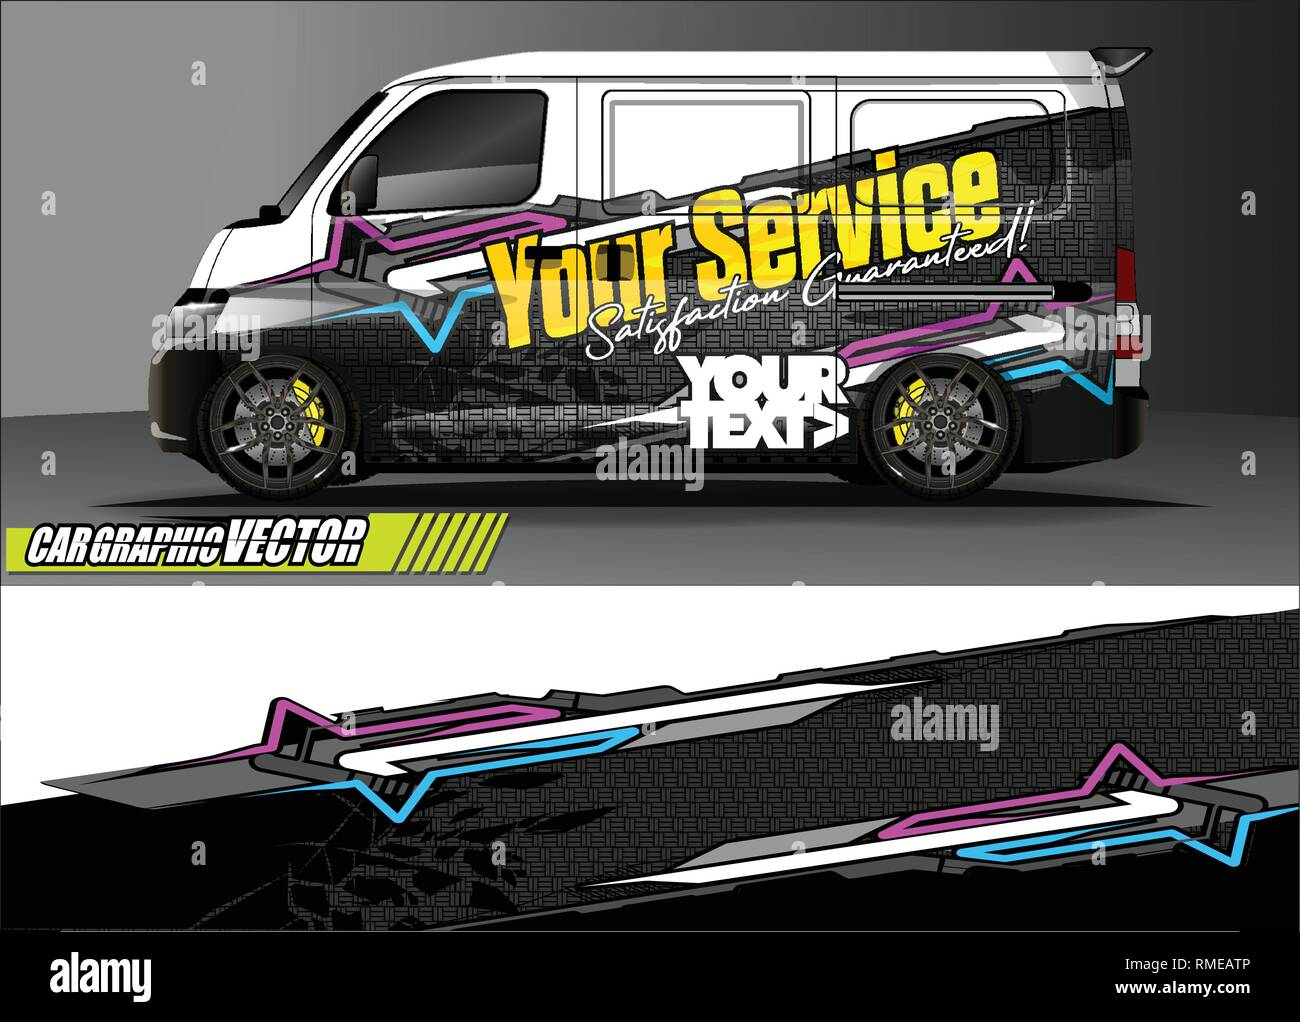 Car wrap design simple lines with abstract background vector concept for vehicle vinyl wrap and automotive decal livery